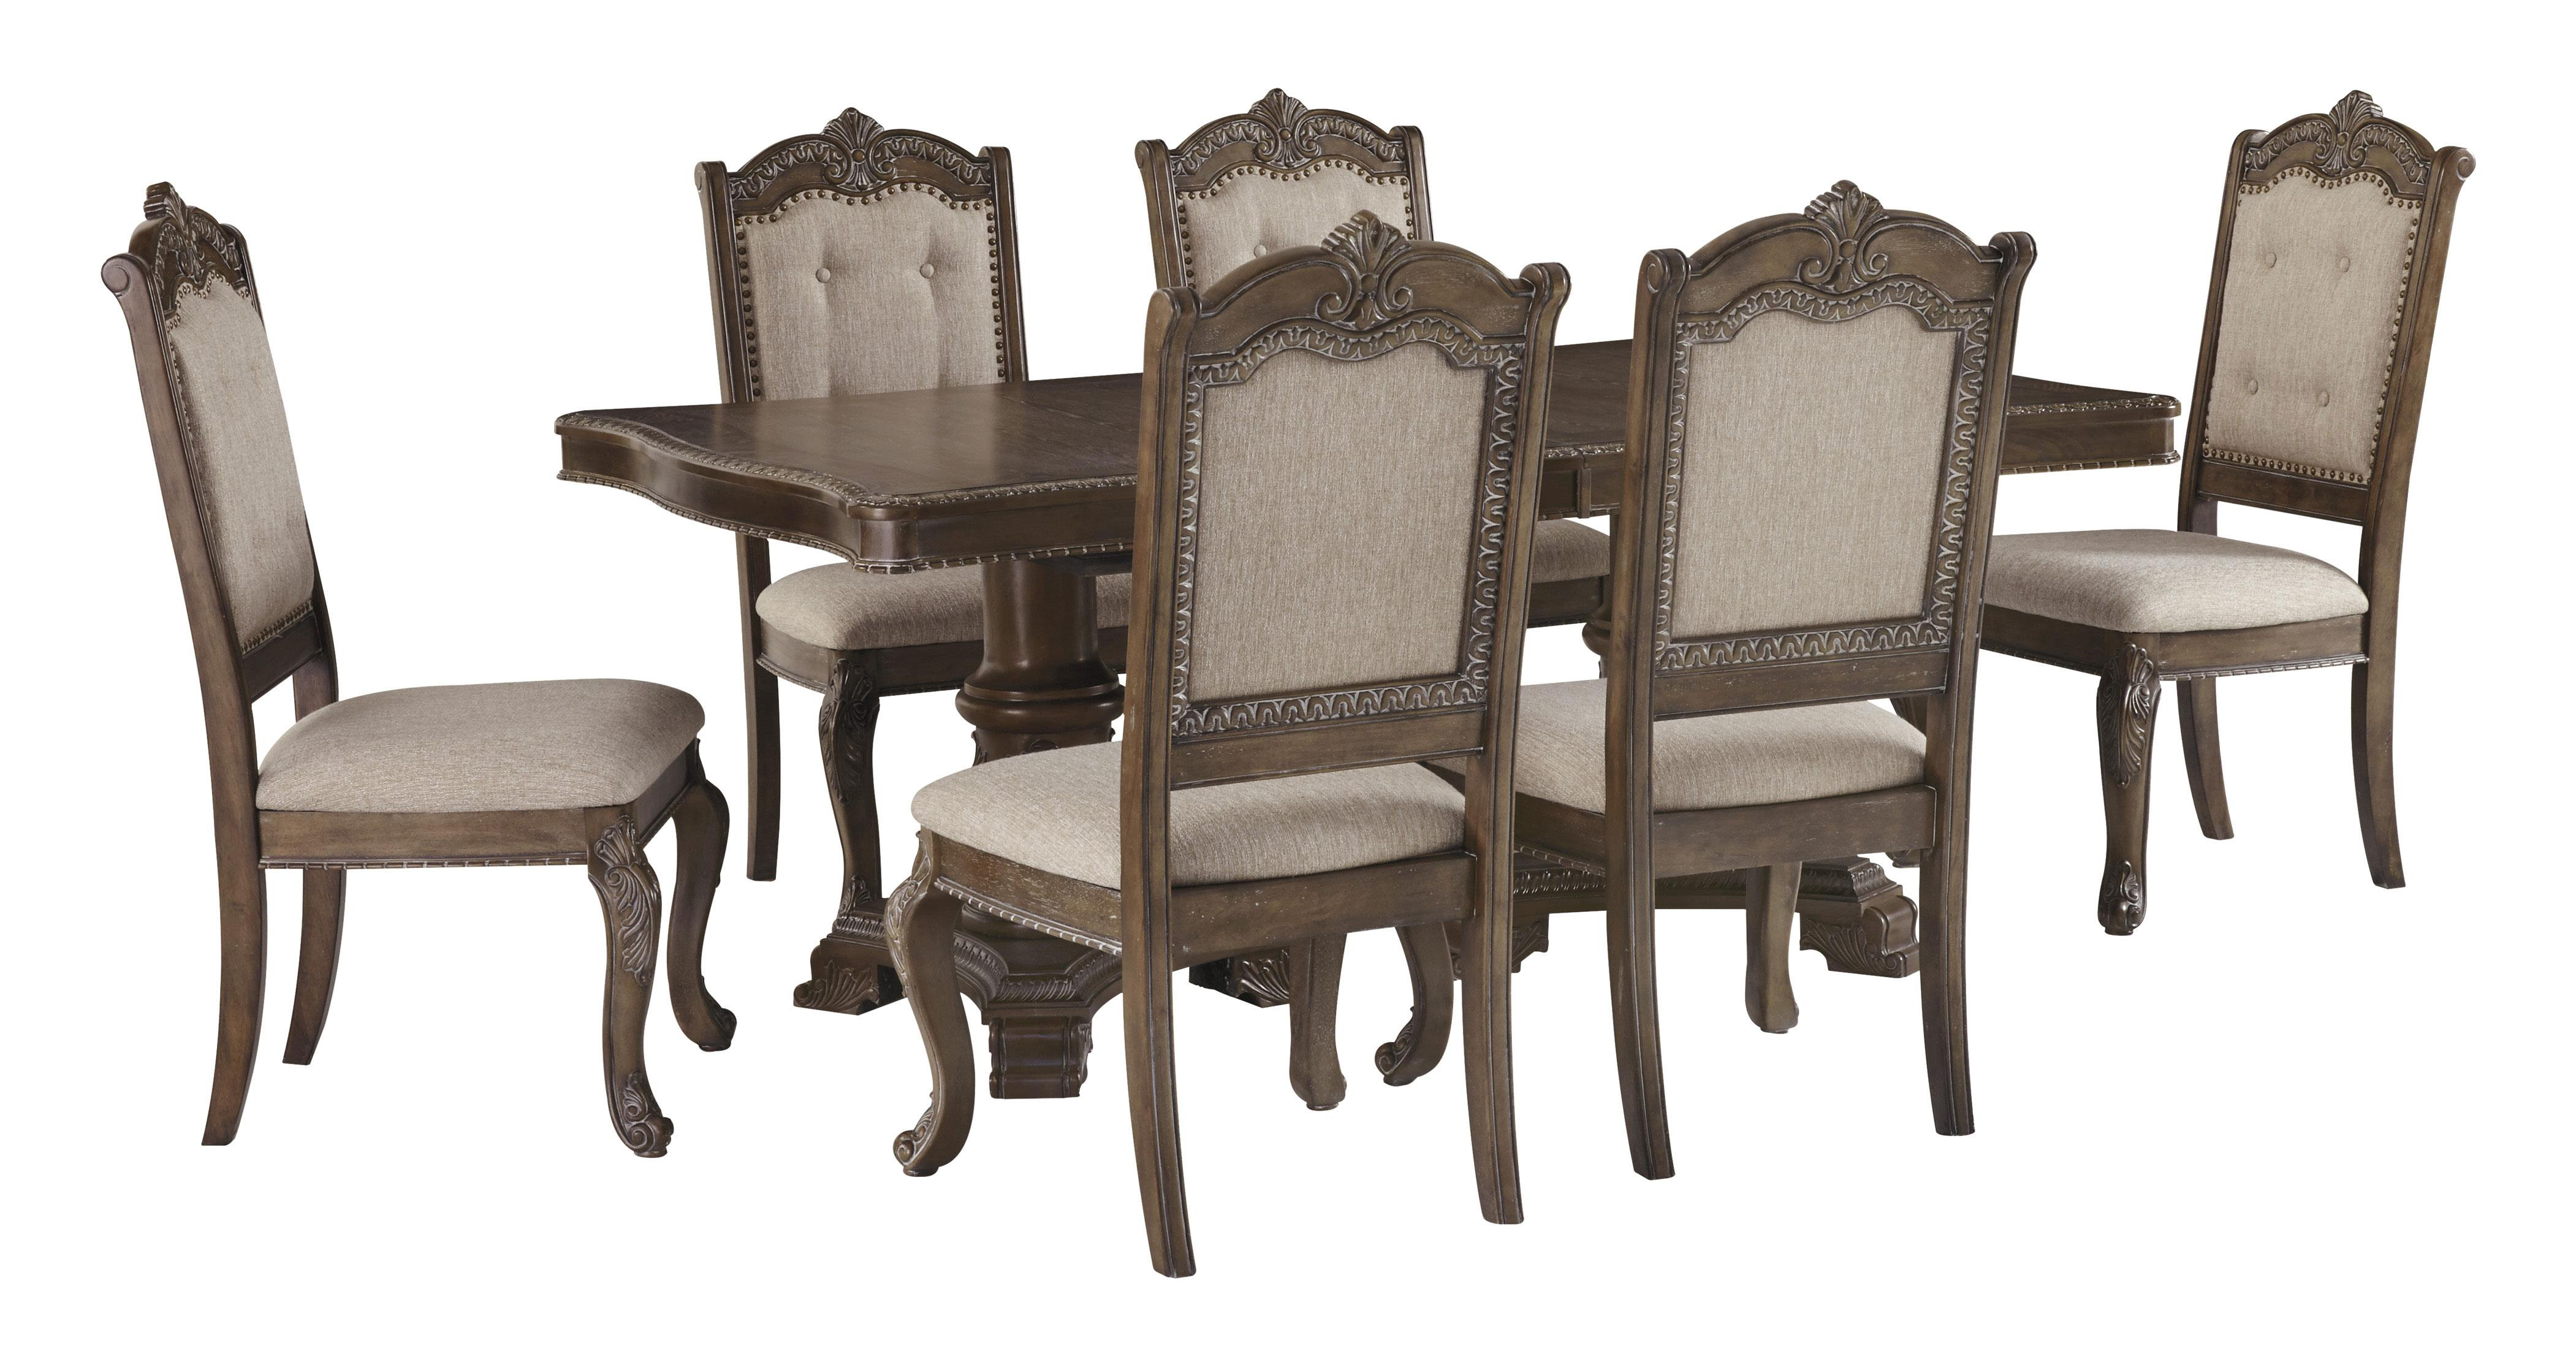 Ashley Furniture Charmond Rectangular Dining Room Set in Brown